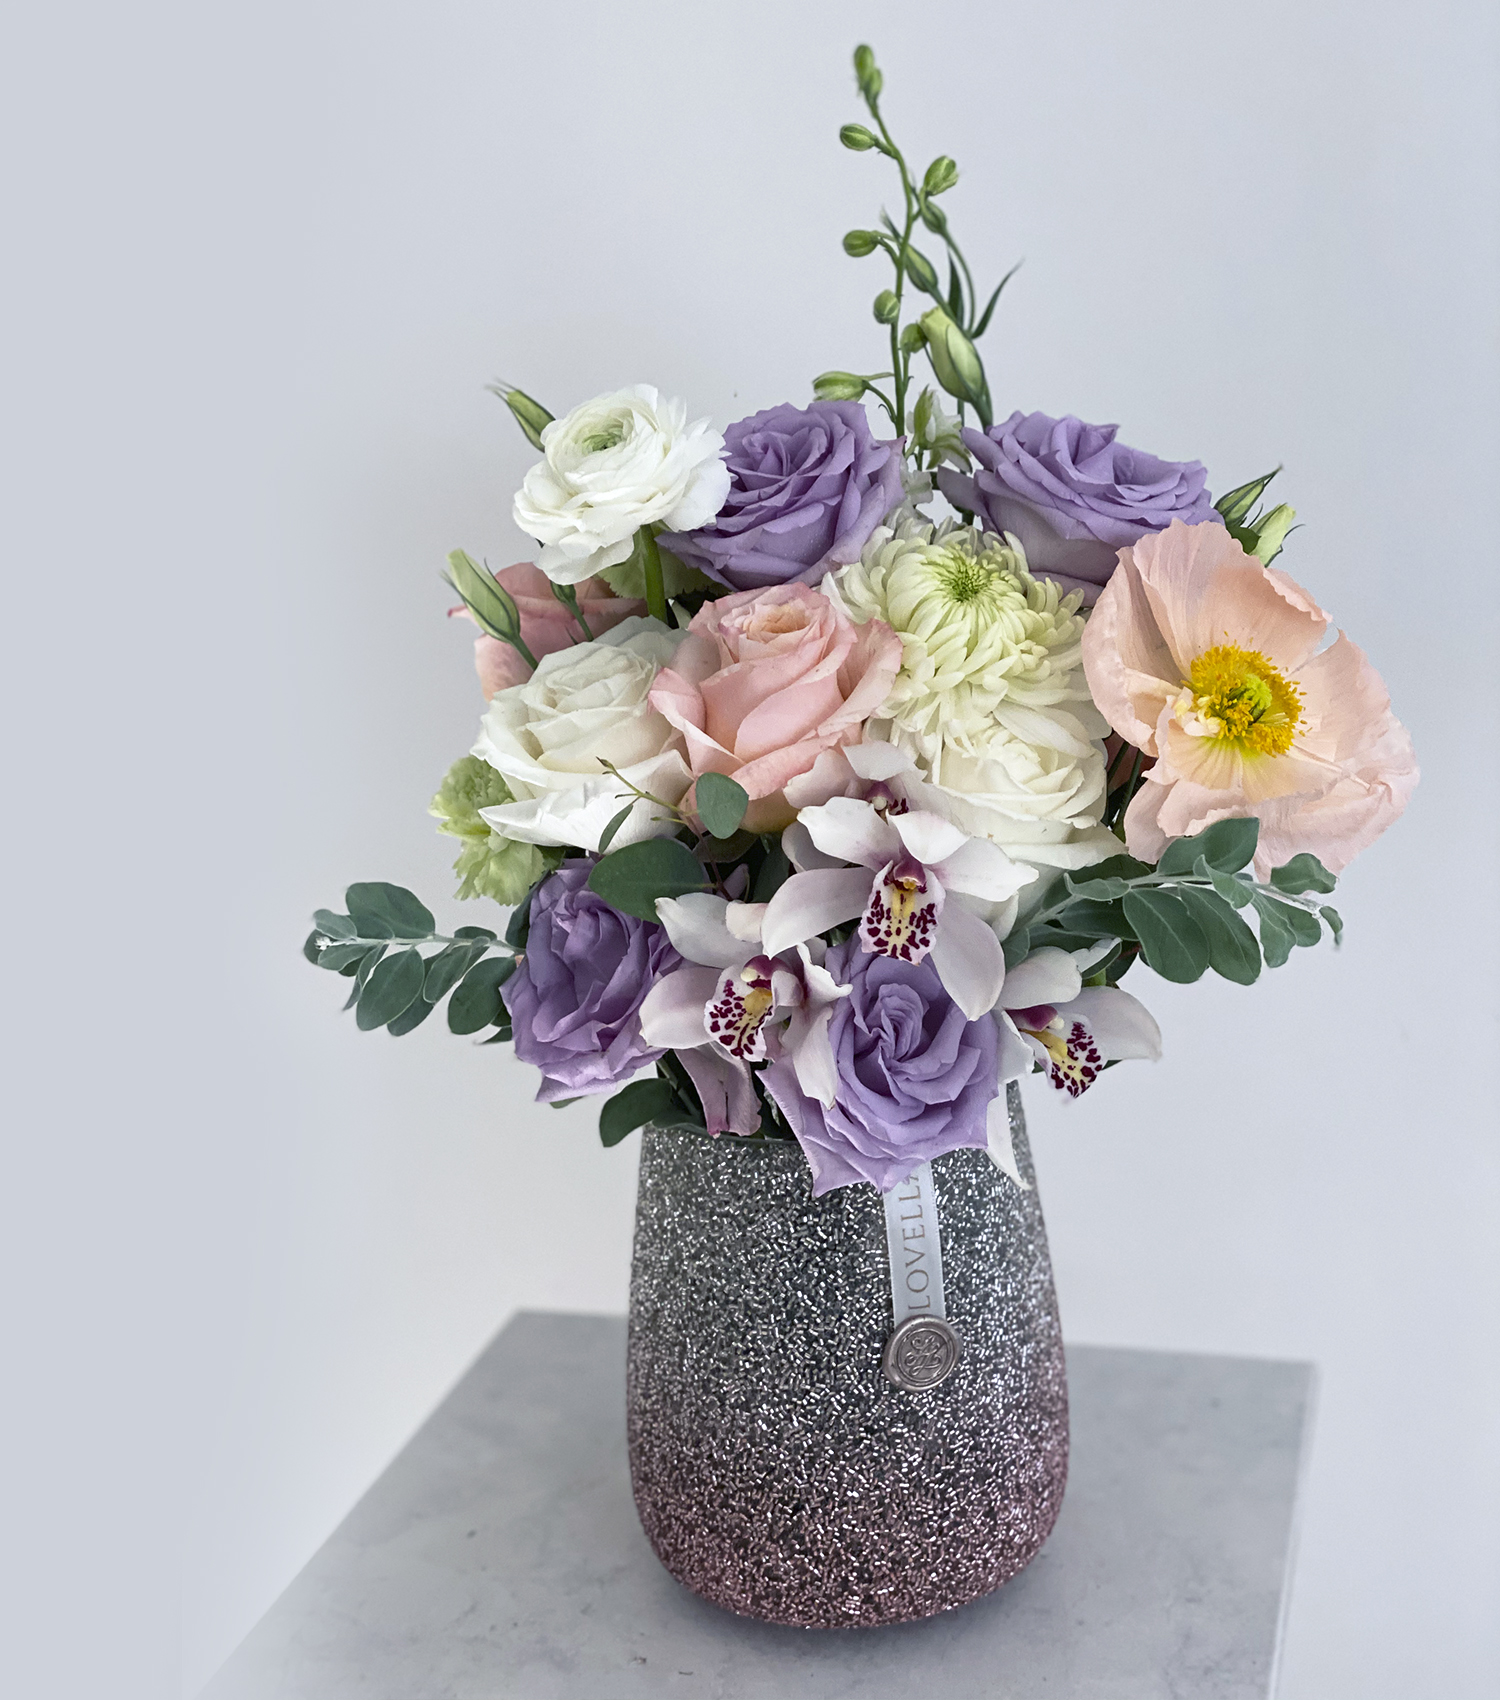 Rosey pastel fresh floral arrangement in glimmering jar on marble table